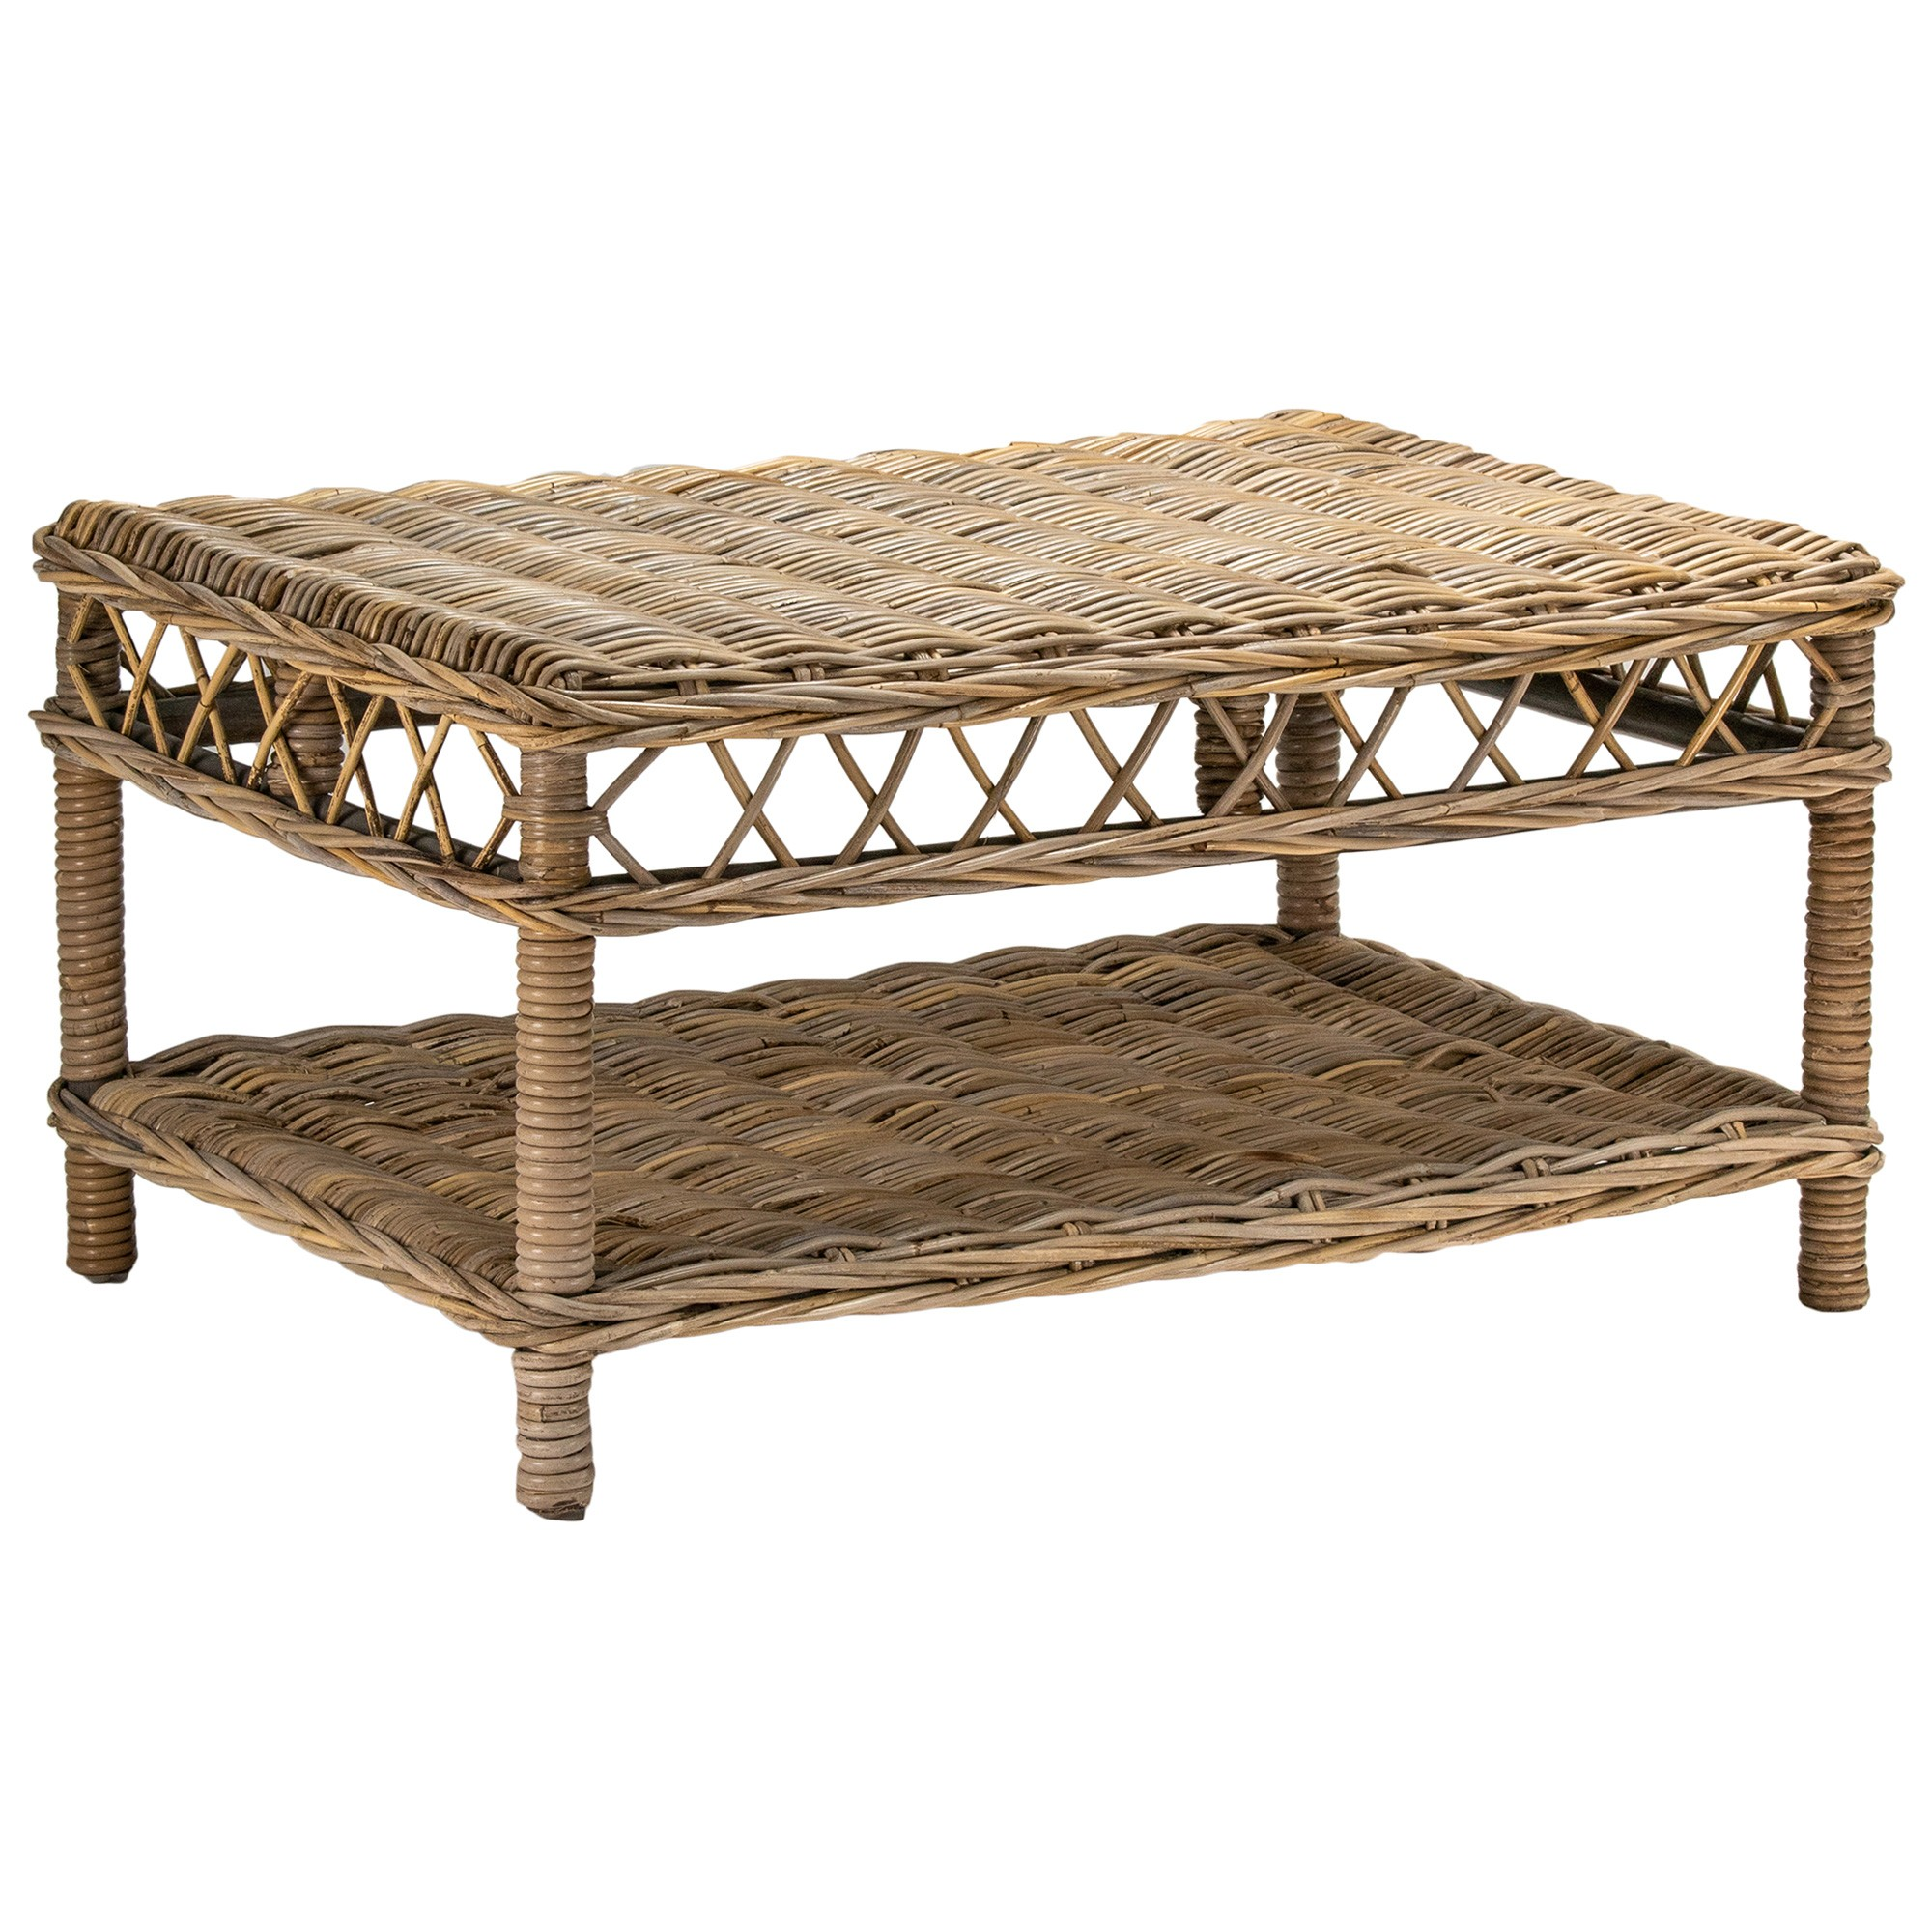 Nassau Rattan Coffee Table, Natural